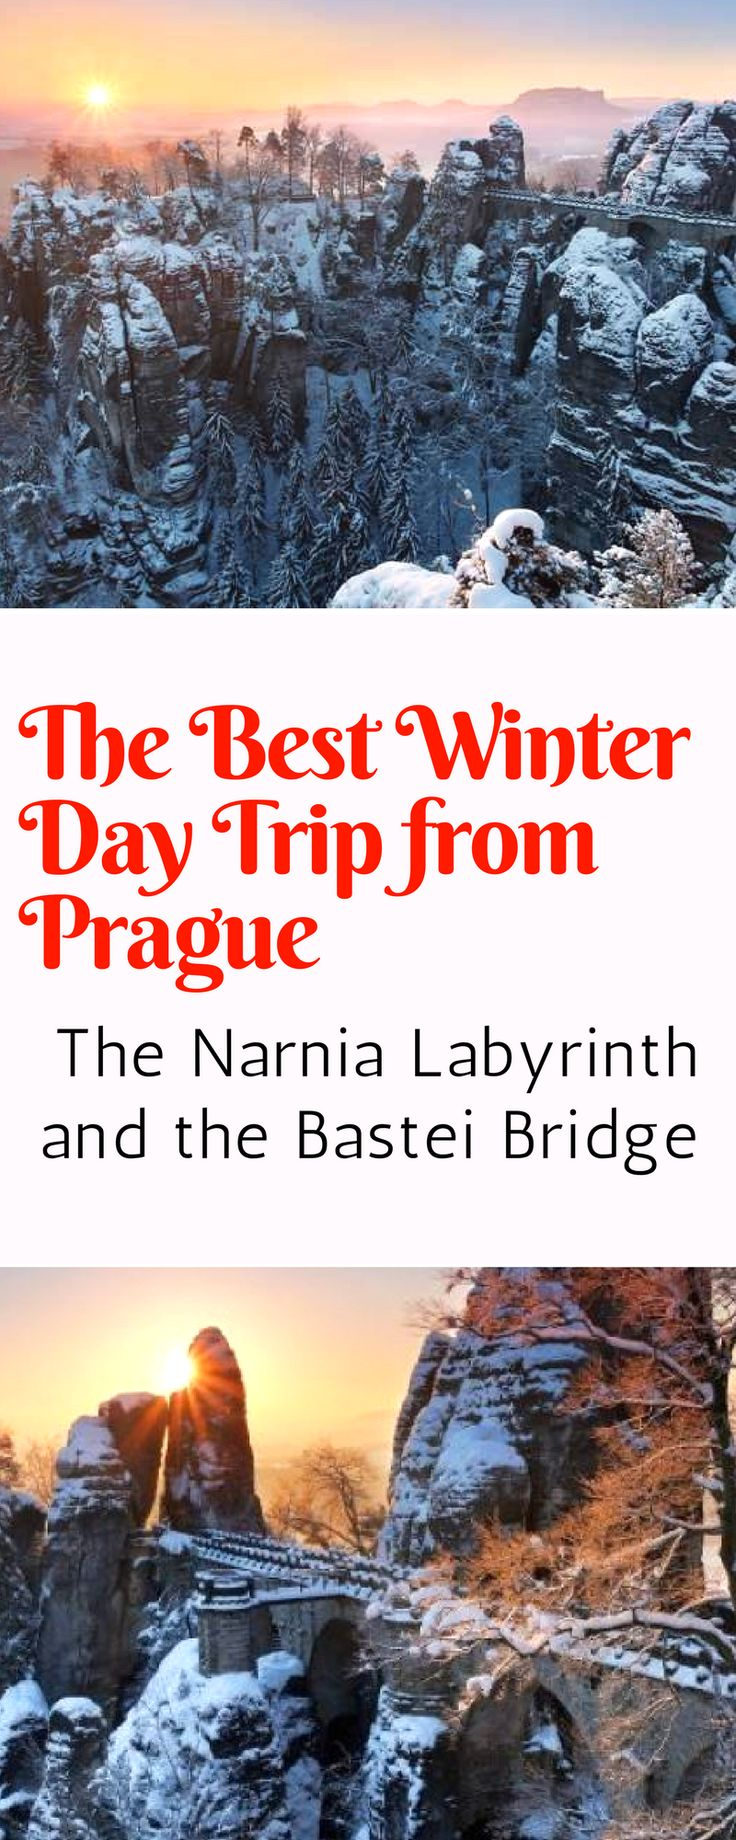 Day Trips From Prague - The best winter walk in the Czech Republic lies just two hours from Prague. See the Narnia Labyrinth and the Bastei Bridge all on one stunning winter walk! Click here for more info!